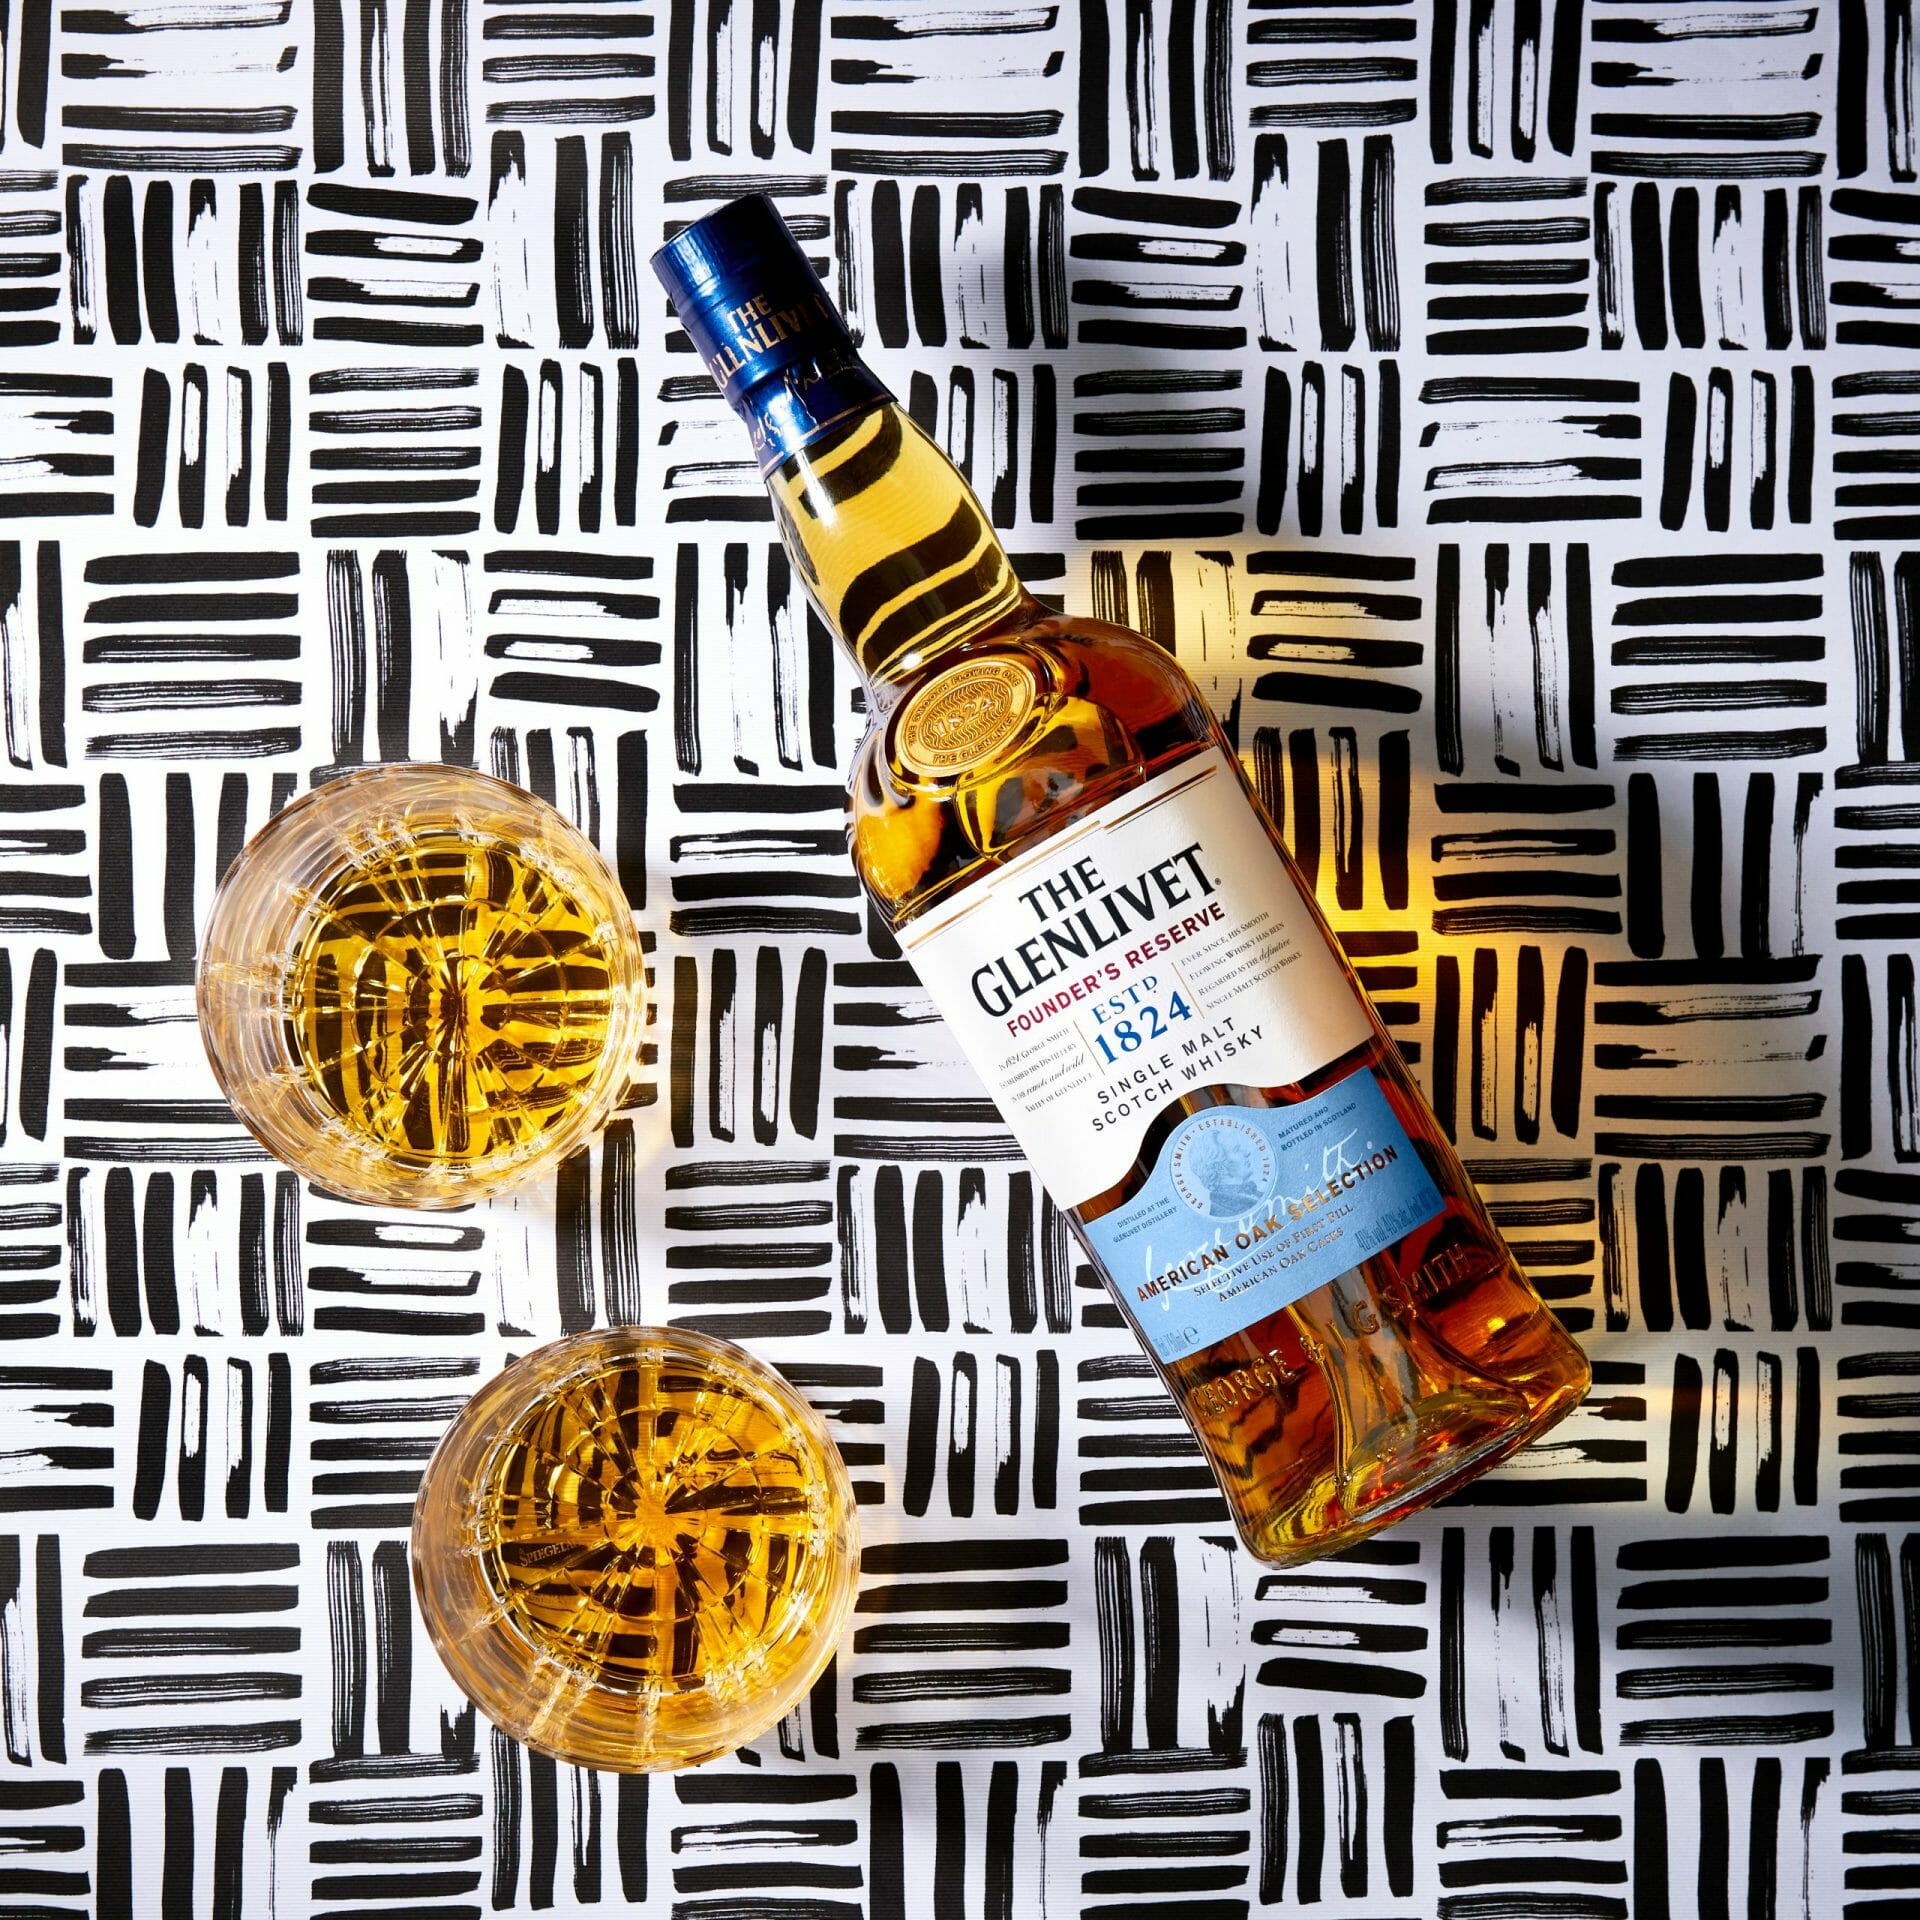 The Glenlivet Spirit Founder's Reserve Whisky Brings the Brand Into a New Age